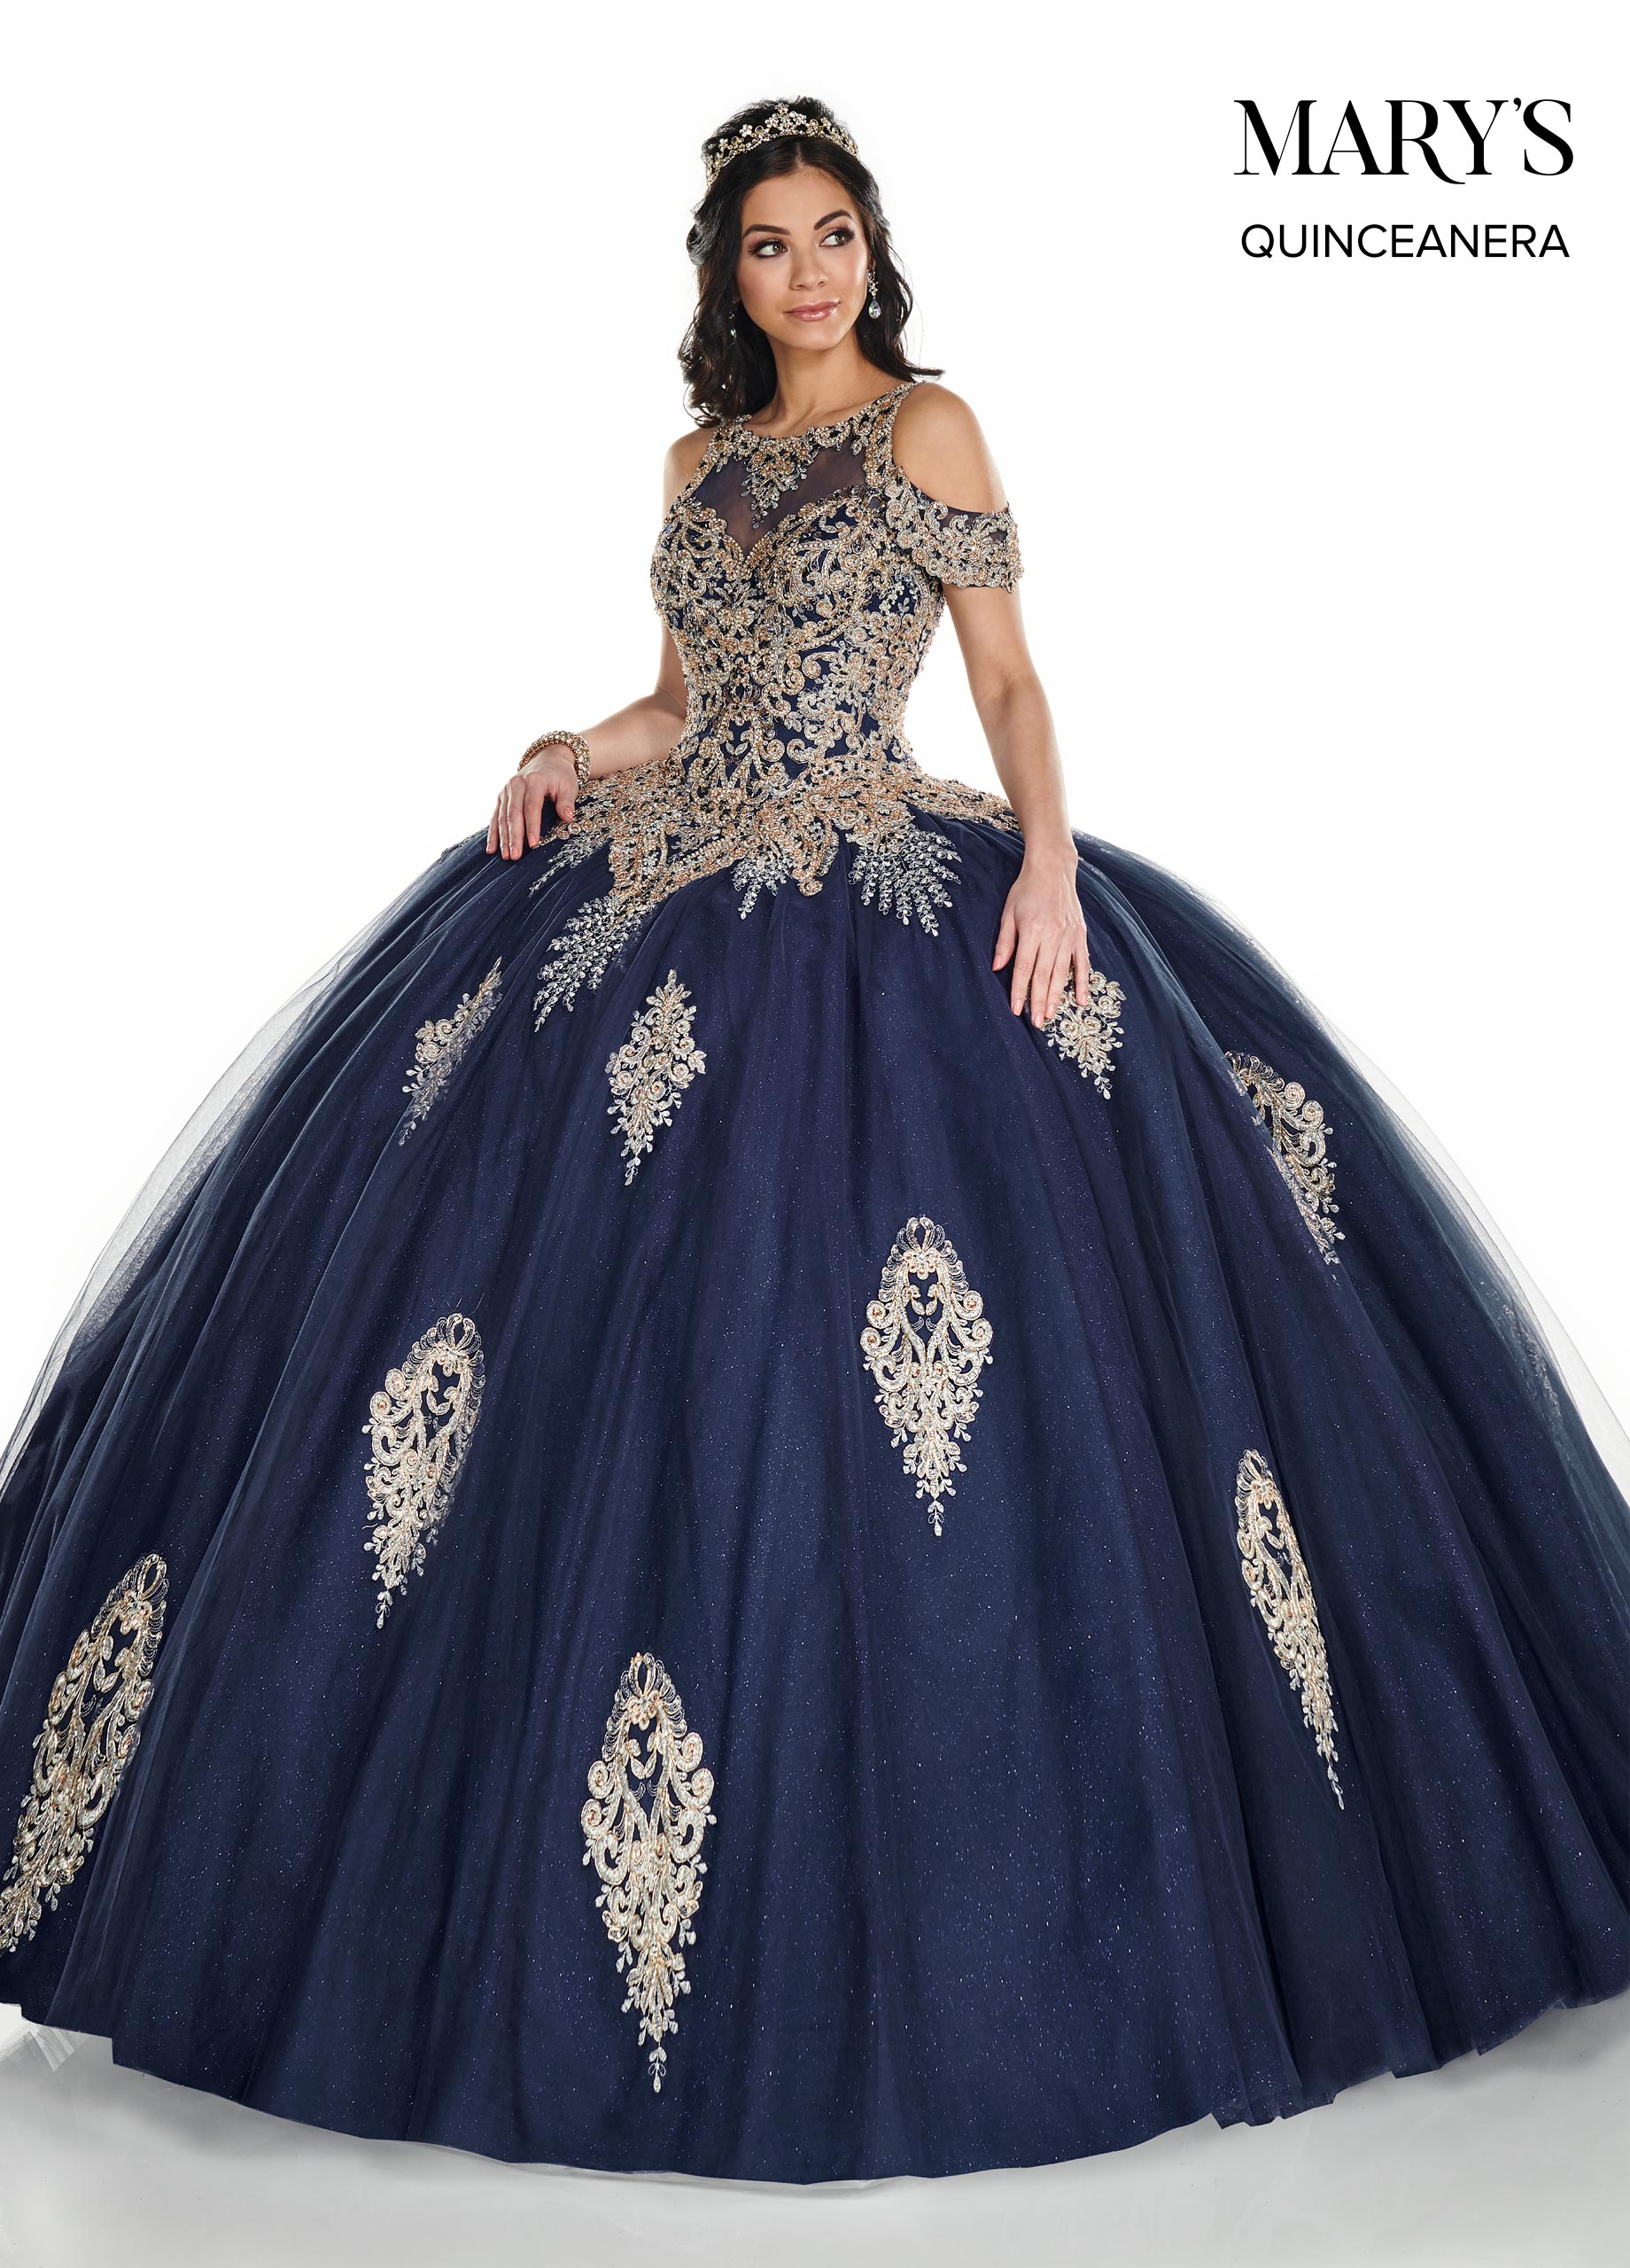 Marys Quinceanera Dresses | Mary's Quinceanera | Style - MQ2091